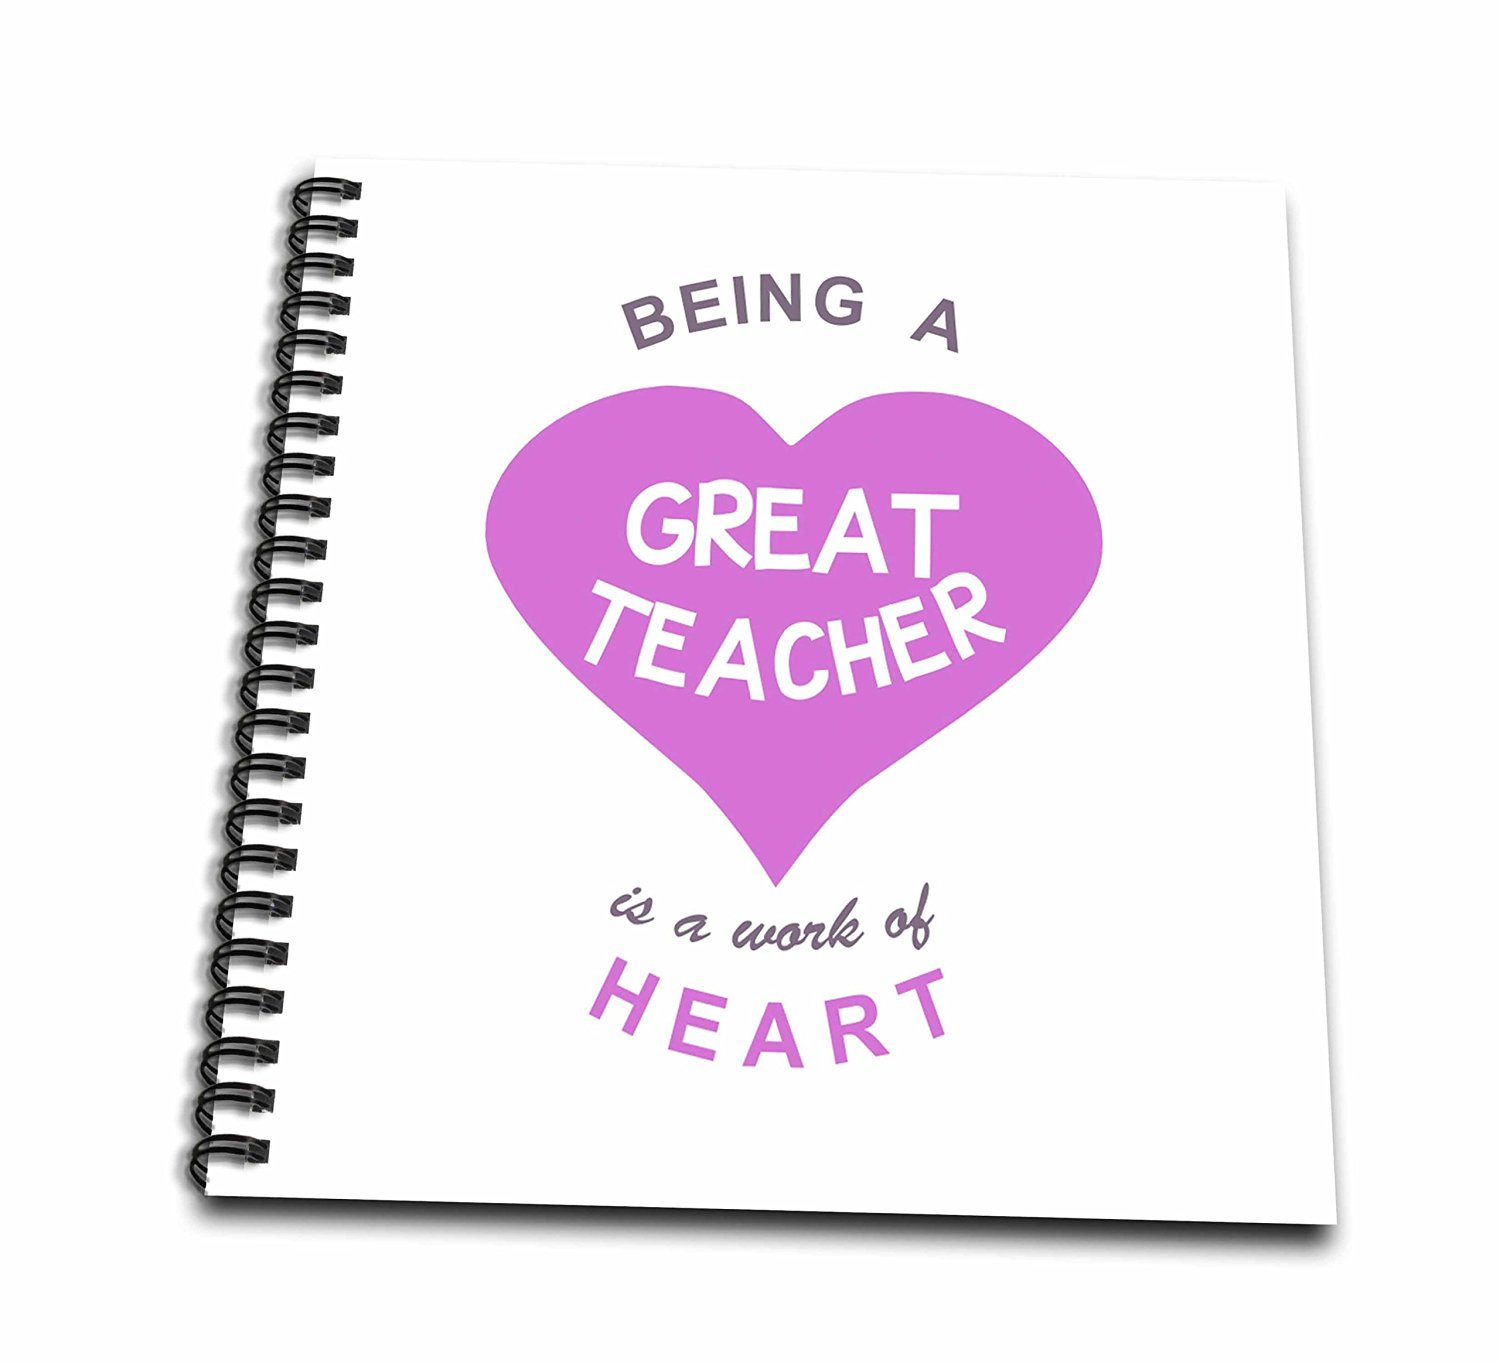 InspirationzStore Love series - Being a Great Teacher is a work of Heart - Thanks for teaching quote - Memory Book 12 x 12 inch (db_183885_2)